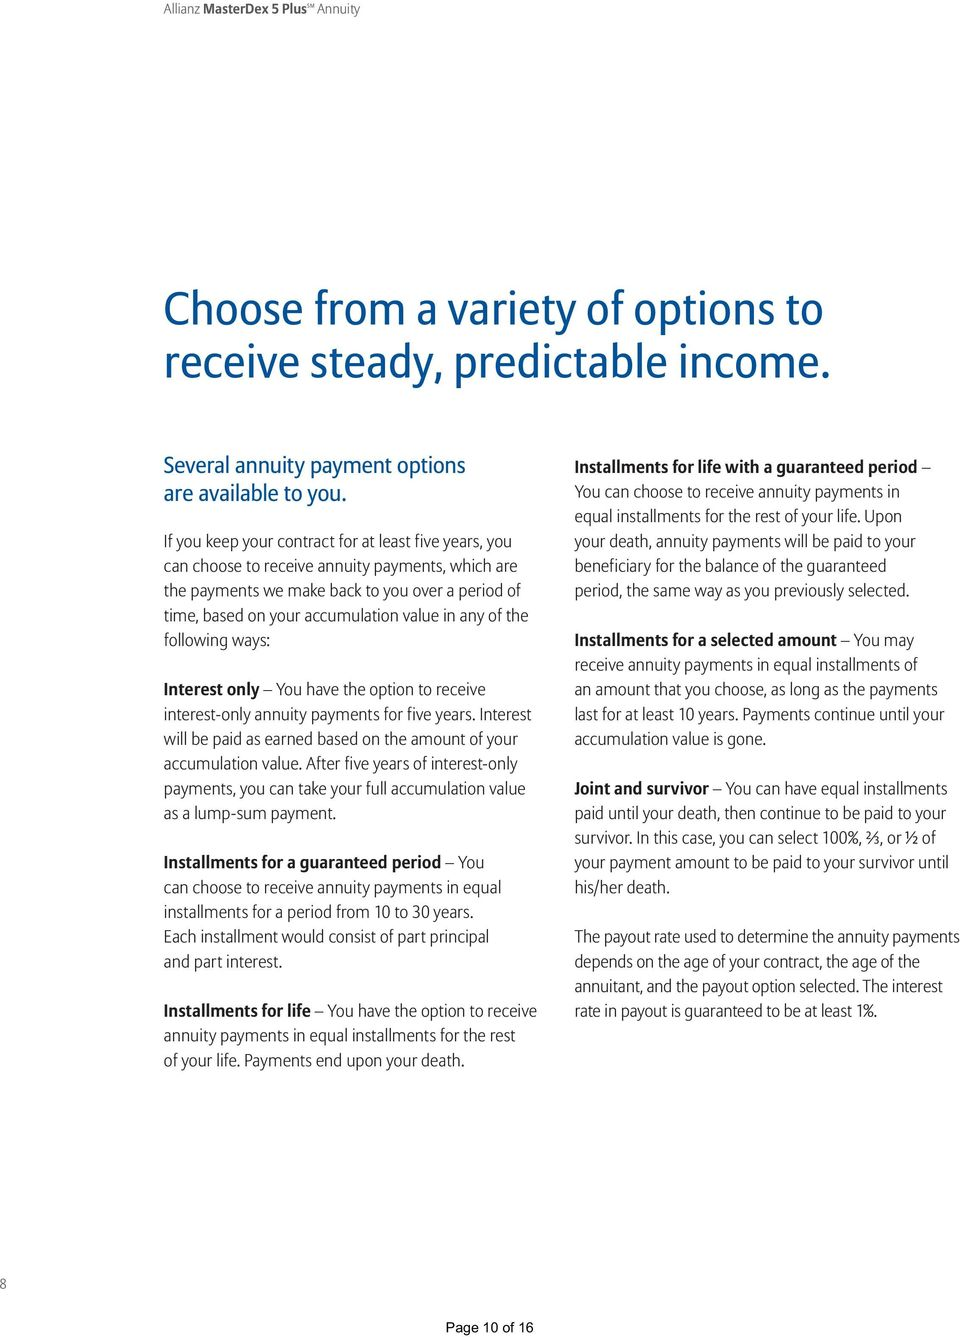 any of the following ways: Interest only You have the option to receive interest-only annuity payments for five years. Interest will be paid as earned based on the amount of your accumulation value.